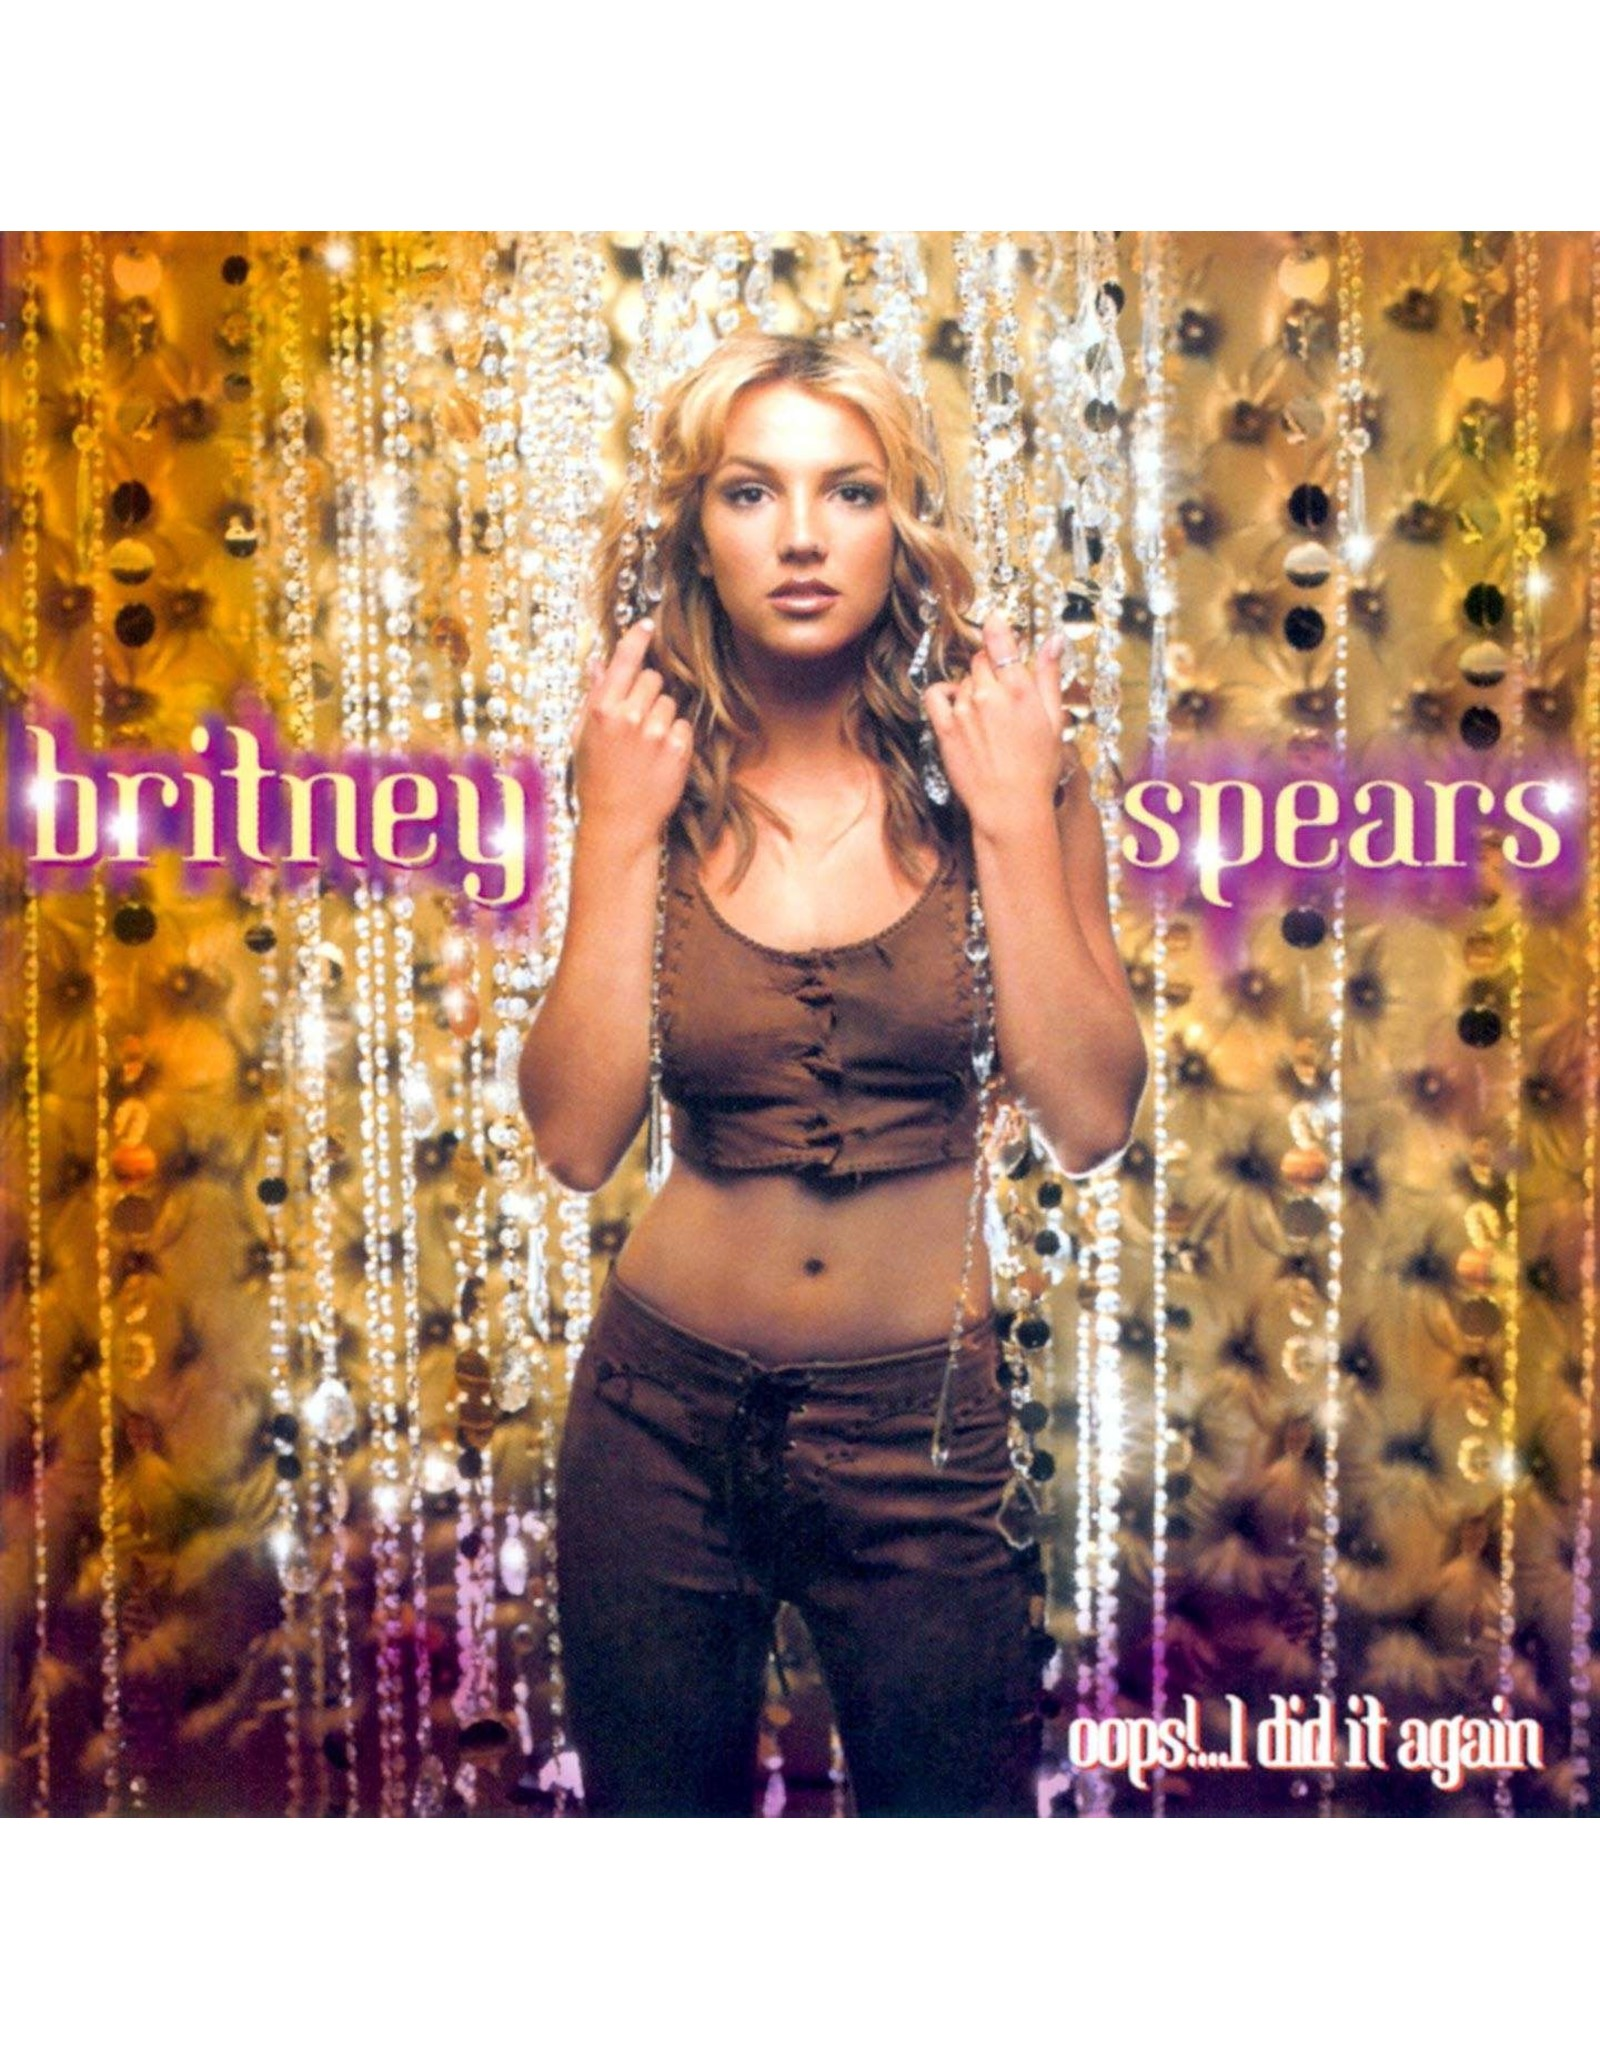 Britney Spears - Oops!... I Did It Again (20th Anniversary) [Picture Disc]